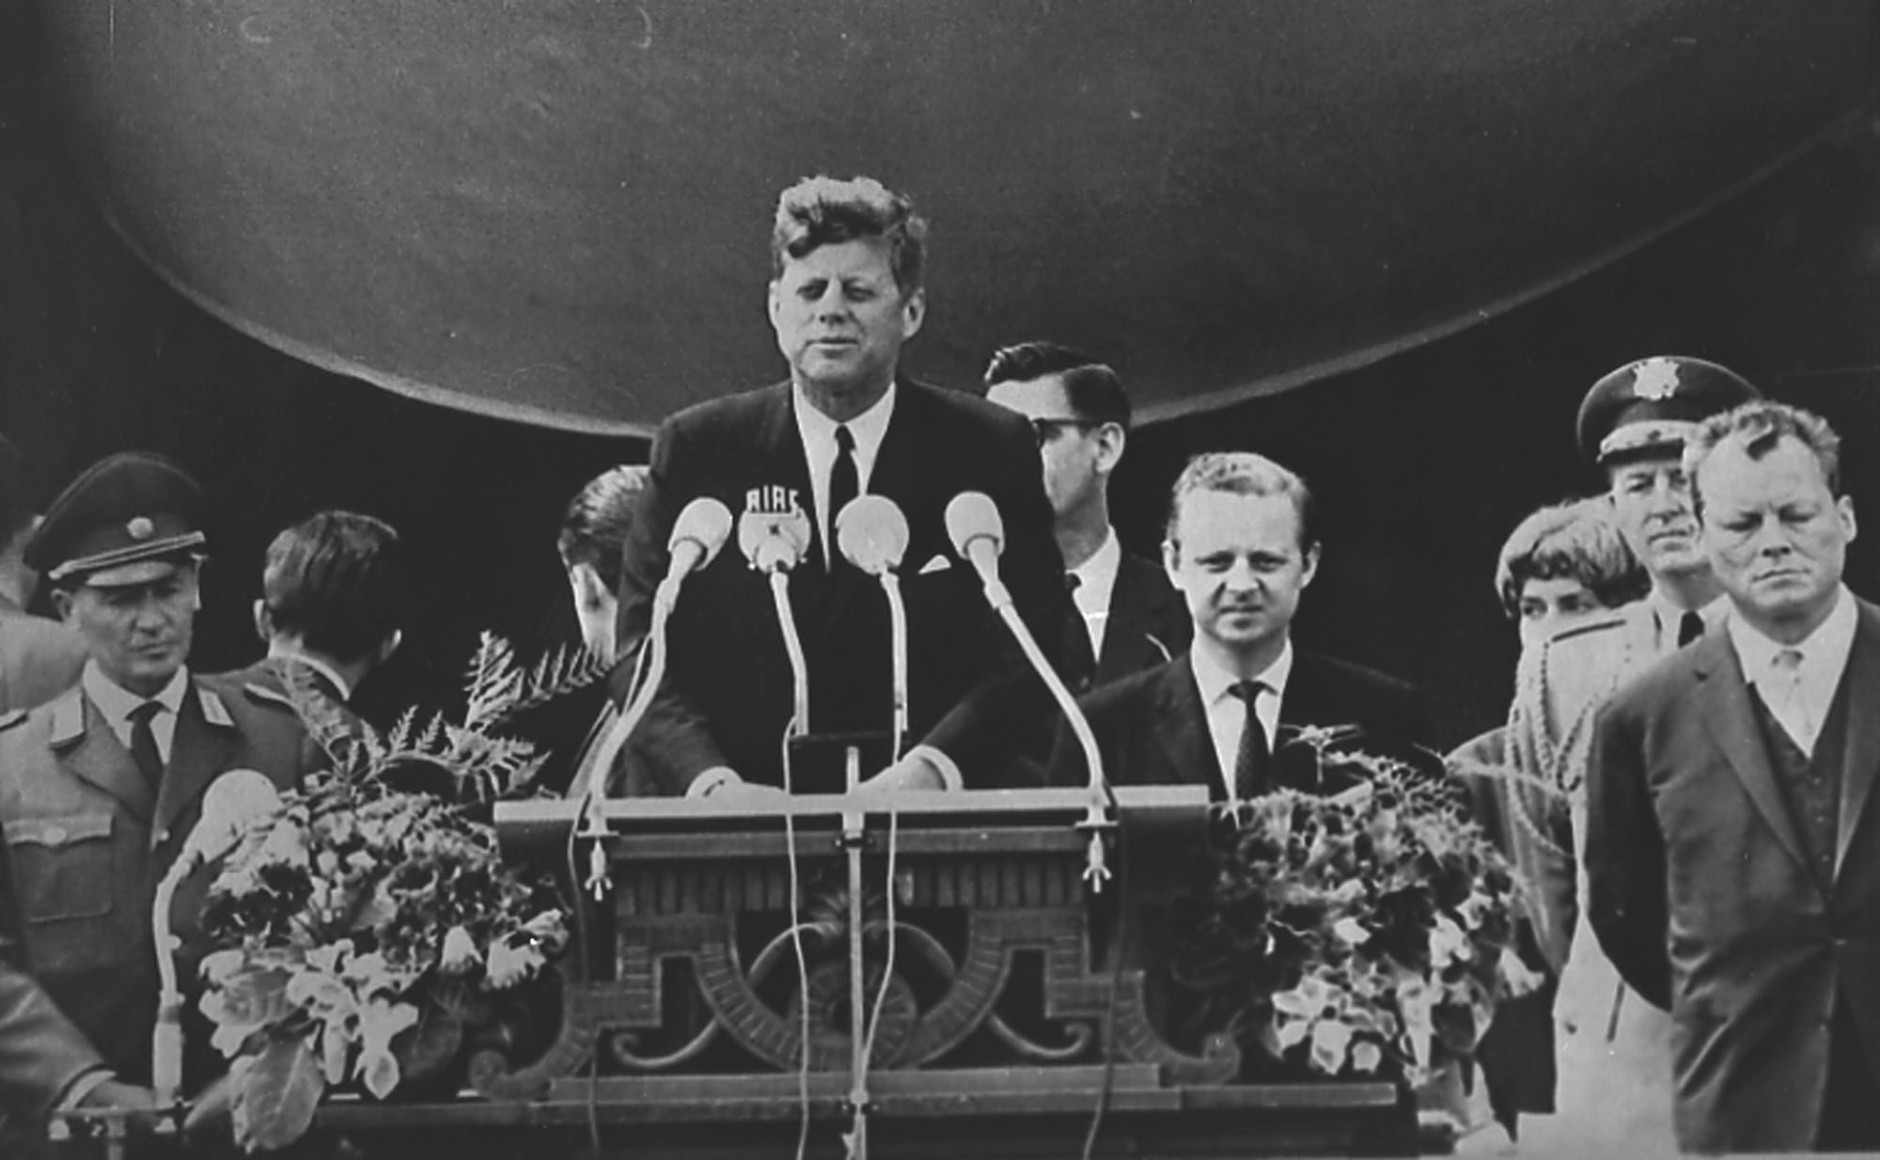 """KENNEDYs BERLIN WALL SPEECH - President John F. Kennedy delivers his famous speech """"I am a Berliner"""" (""""ich bin ein Berliner"""") in front of the city hall in West Berlin concerning the Berlin Wall, June 26, 1963. Fare right the mayor in office of West Berlin Willy Brandt. (AP-Photo)"""